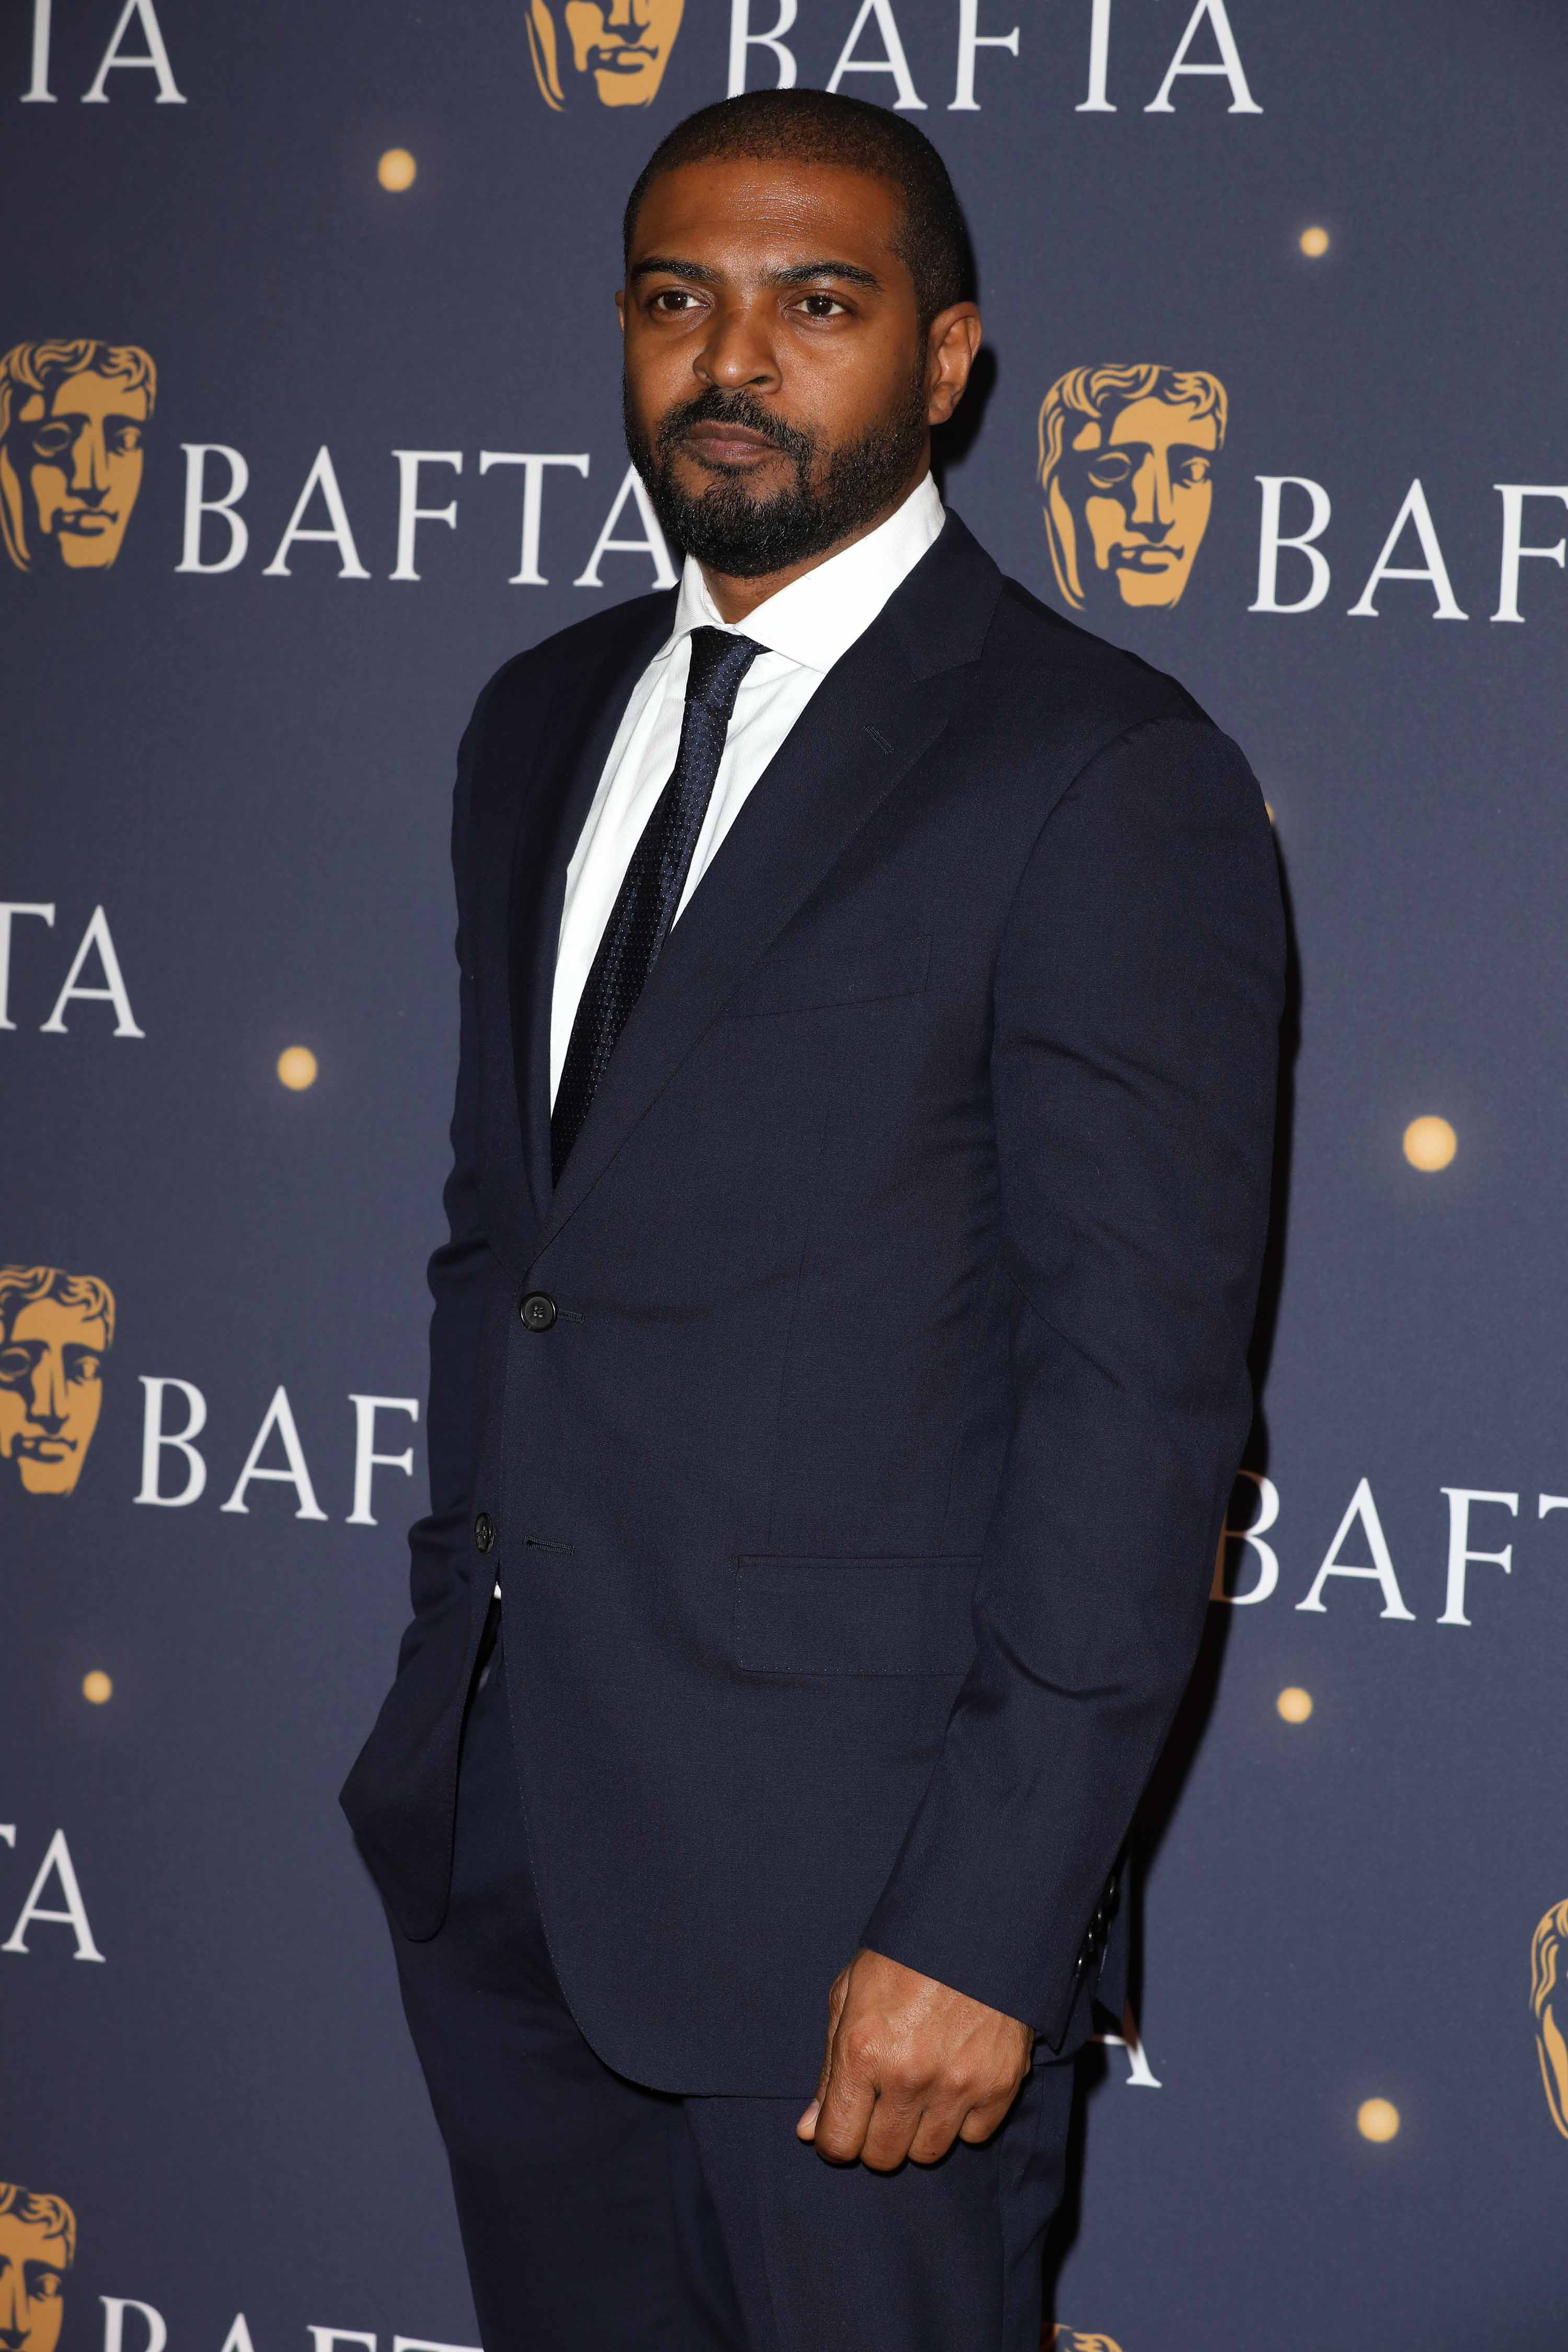 BAFTA suspends Noel Clarke, 'Doctor Who' and 'Kidulthood' star, over abuse allegations